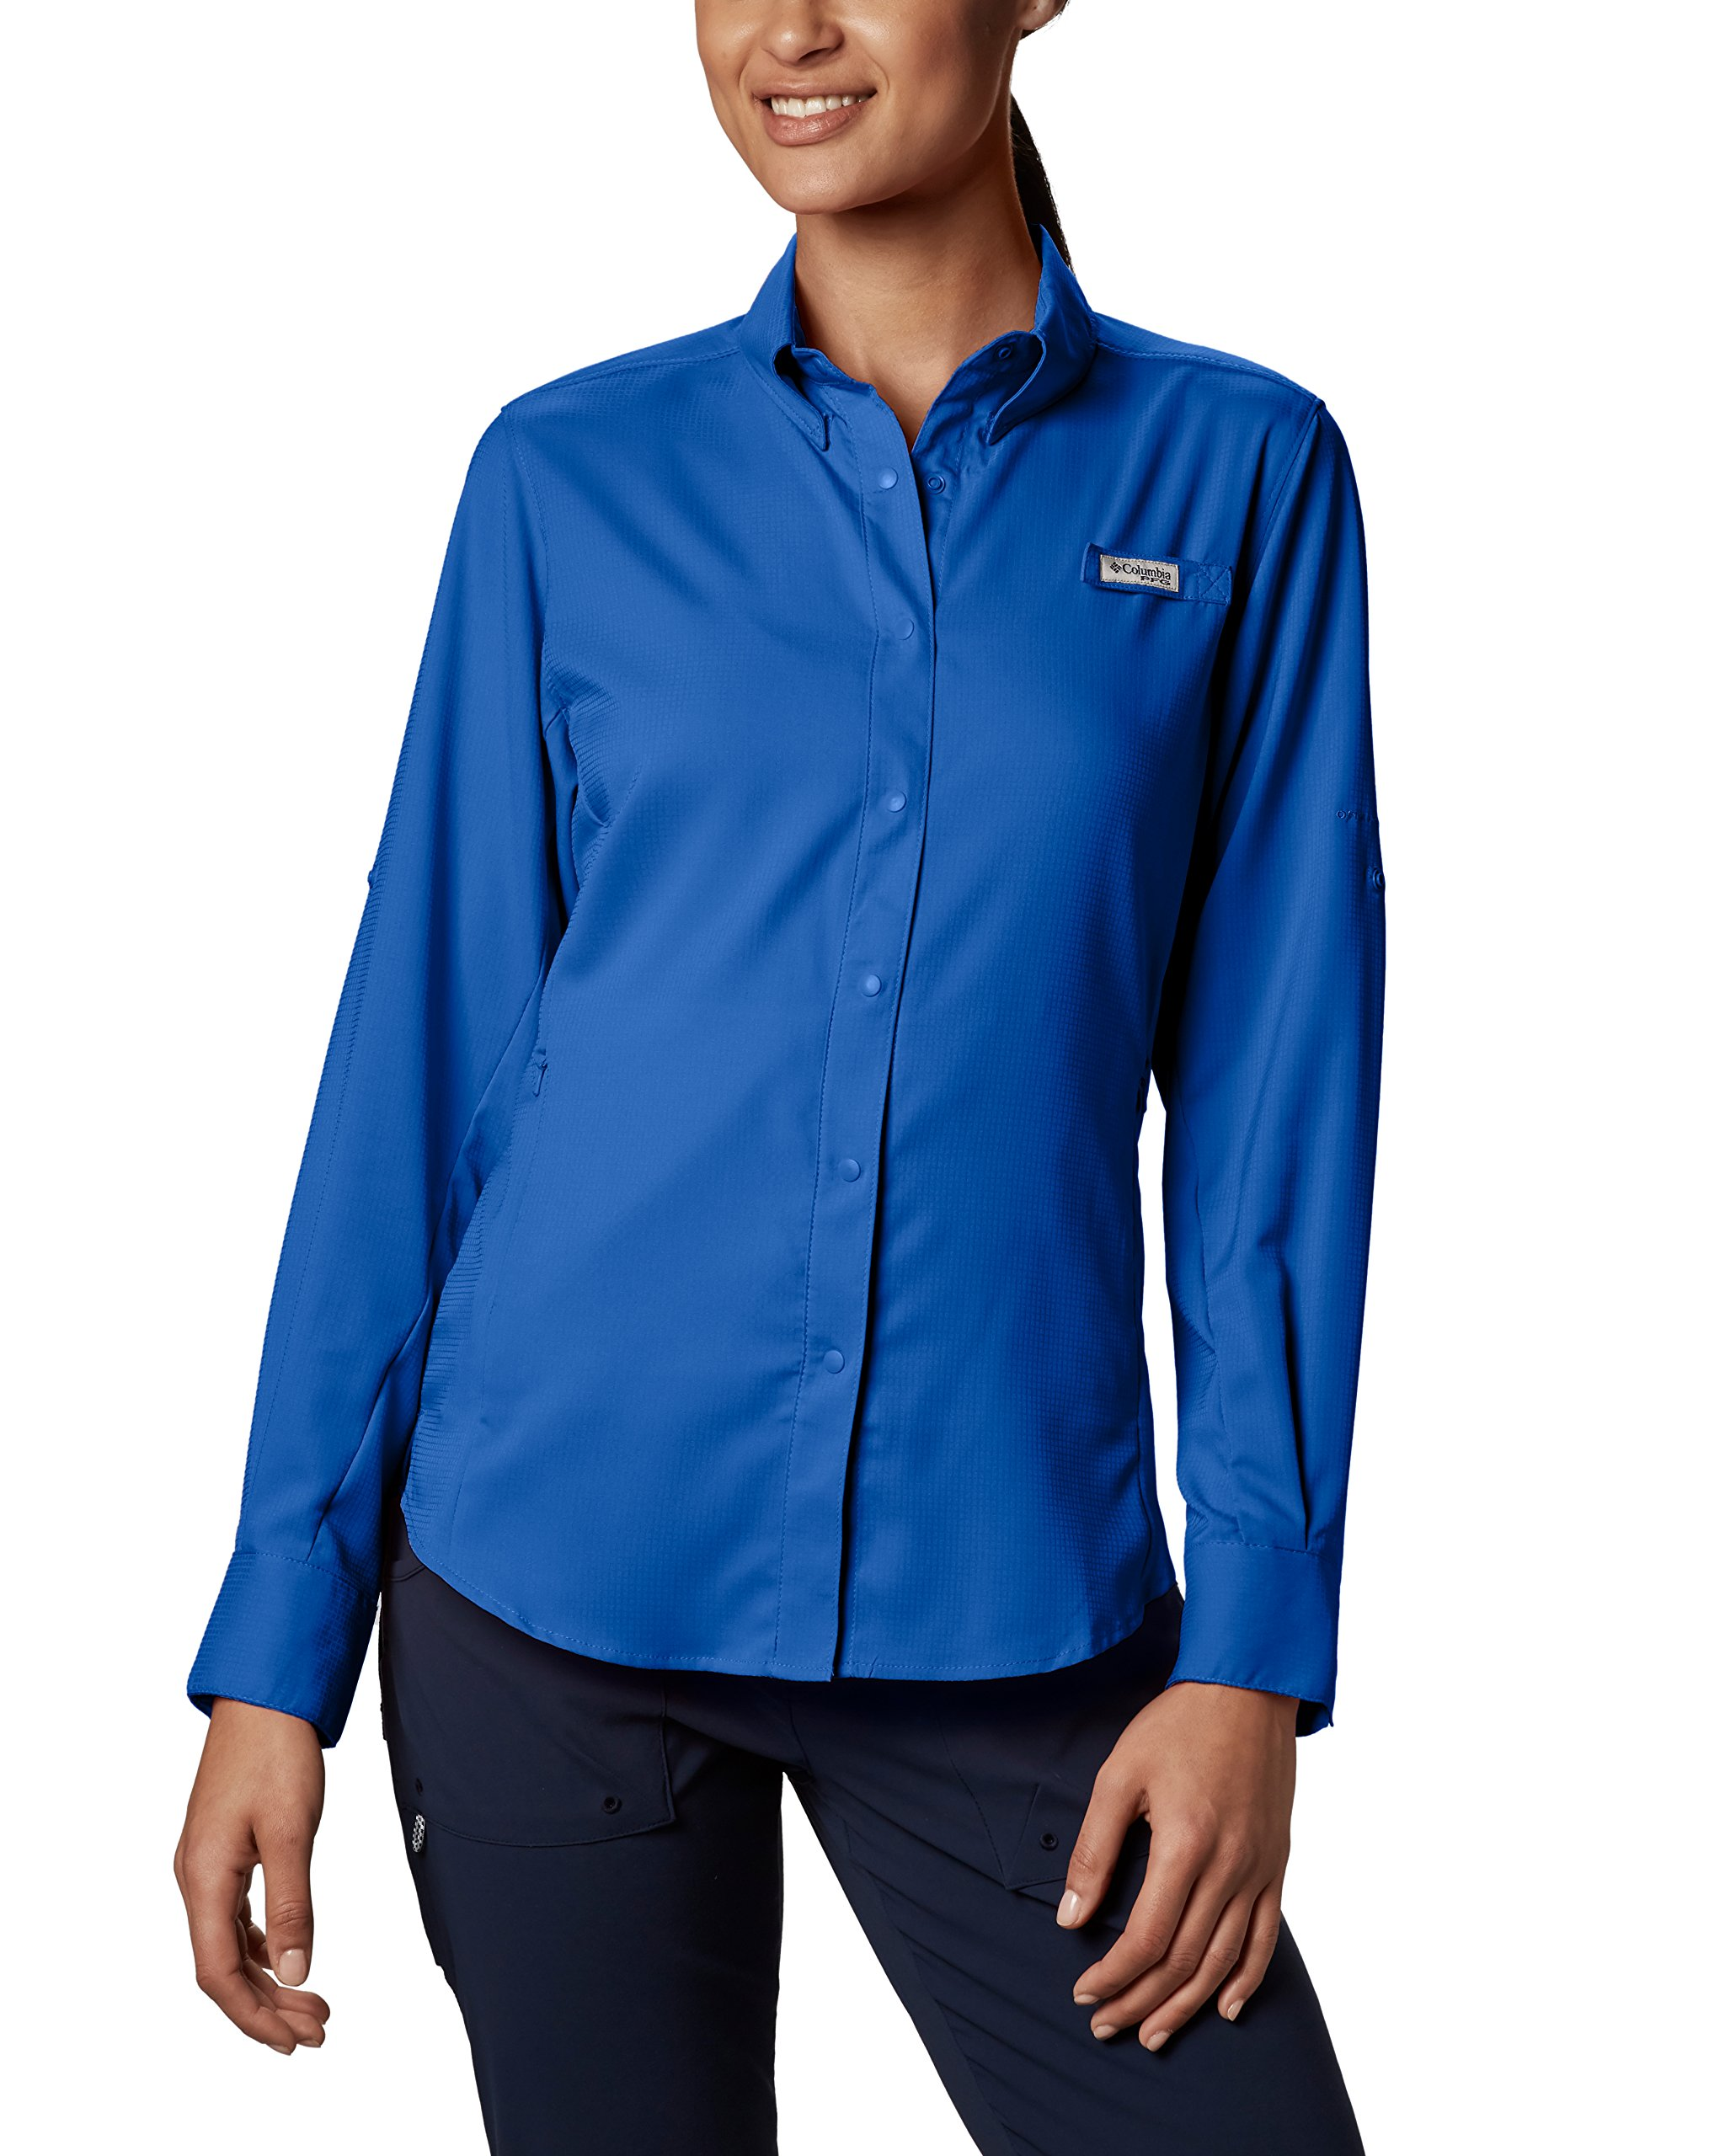 Columbia Women's PFG Tamiami II Long Sleeve Shirt , Blue Macaw, 3X by Columbia